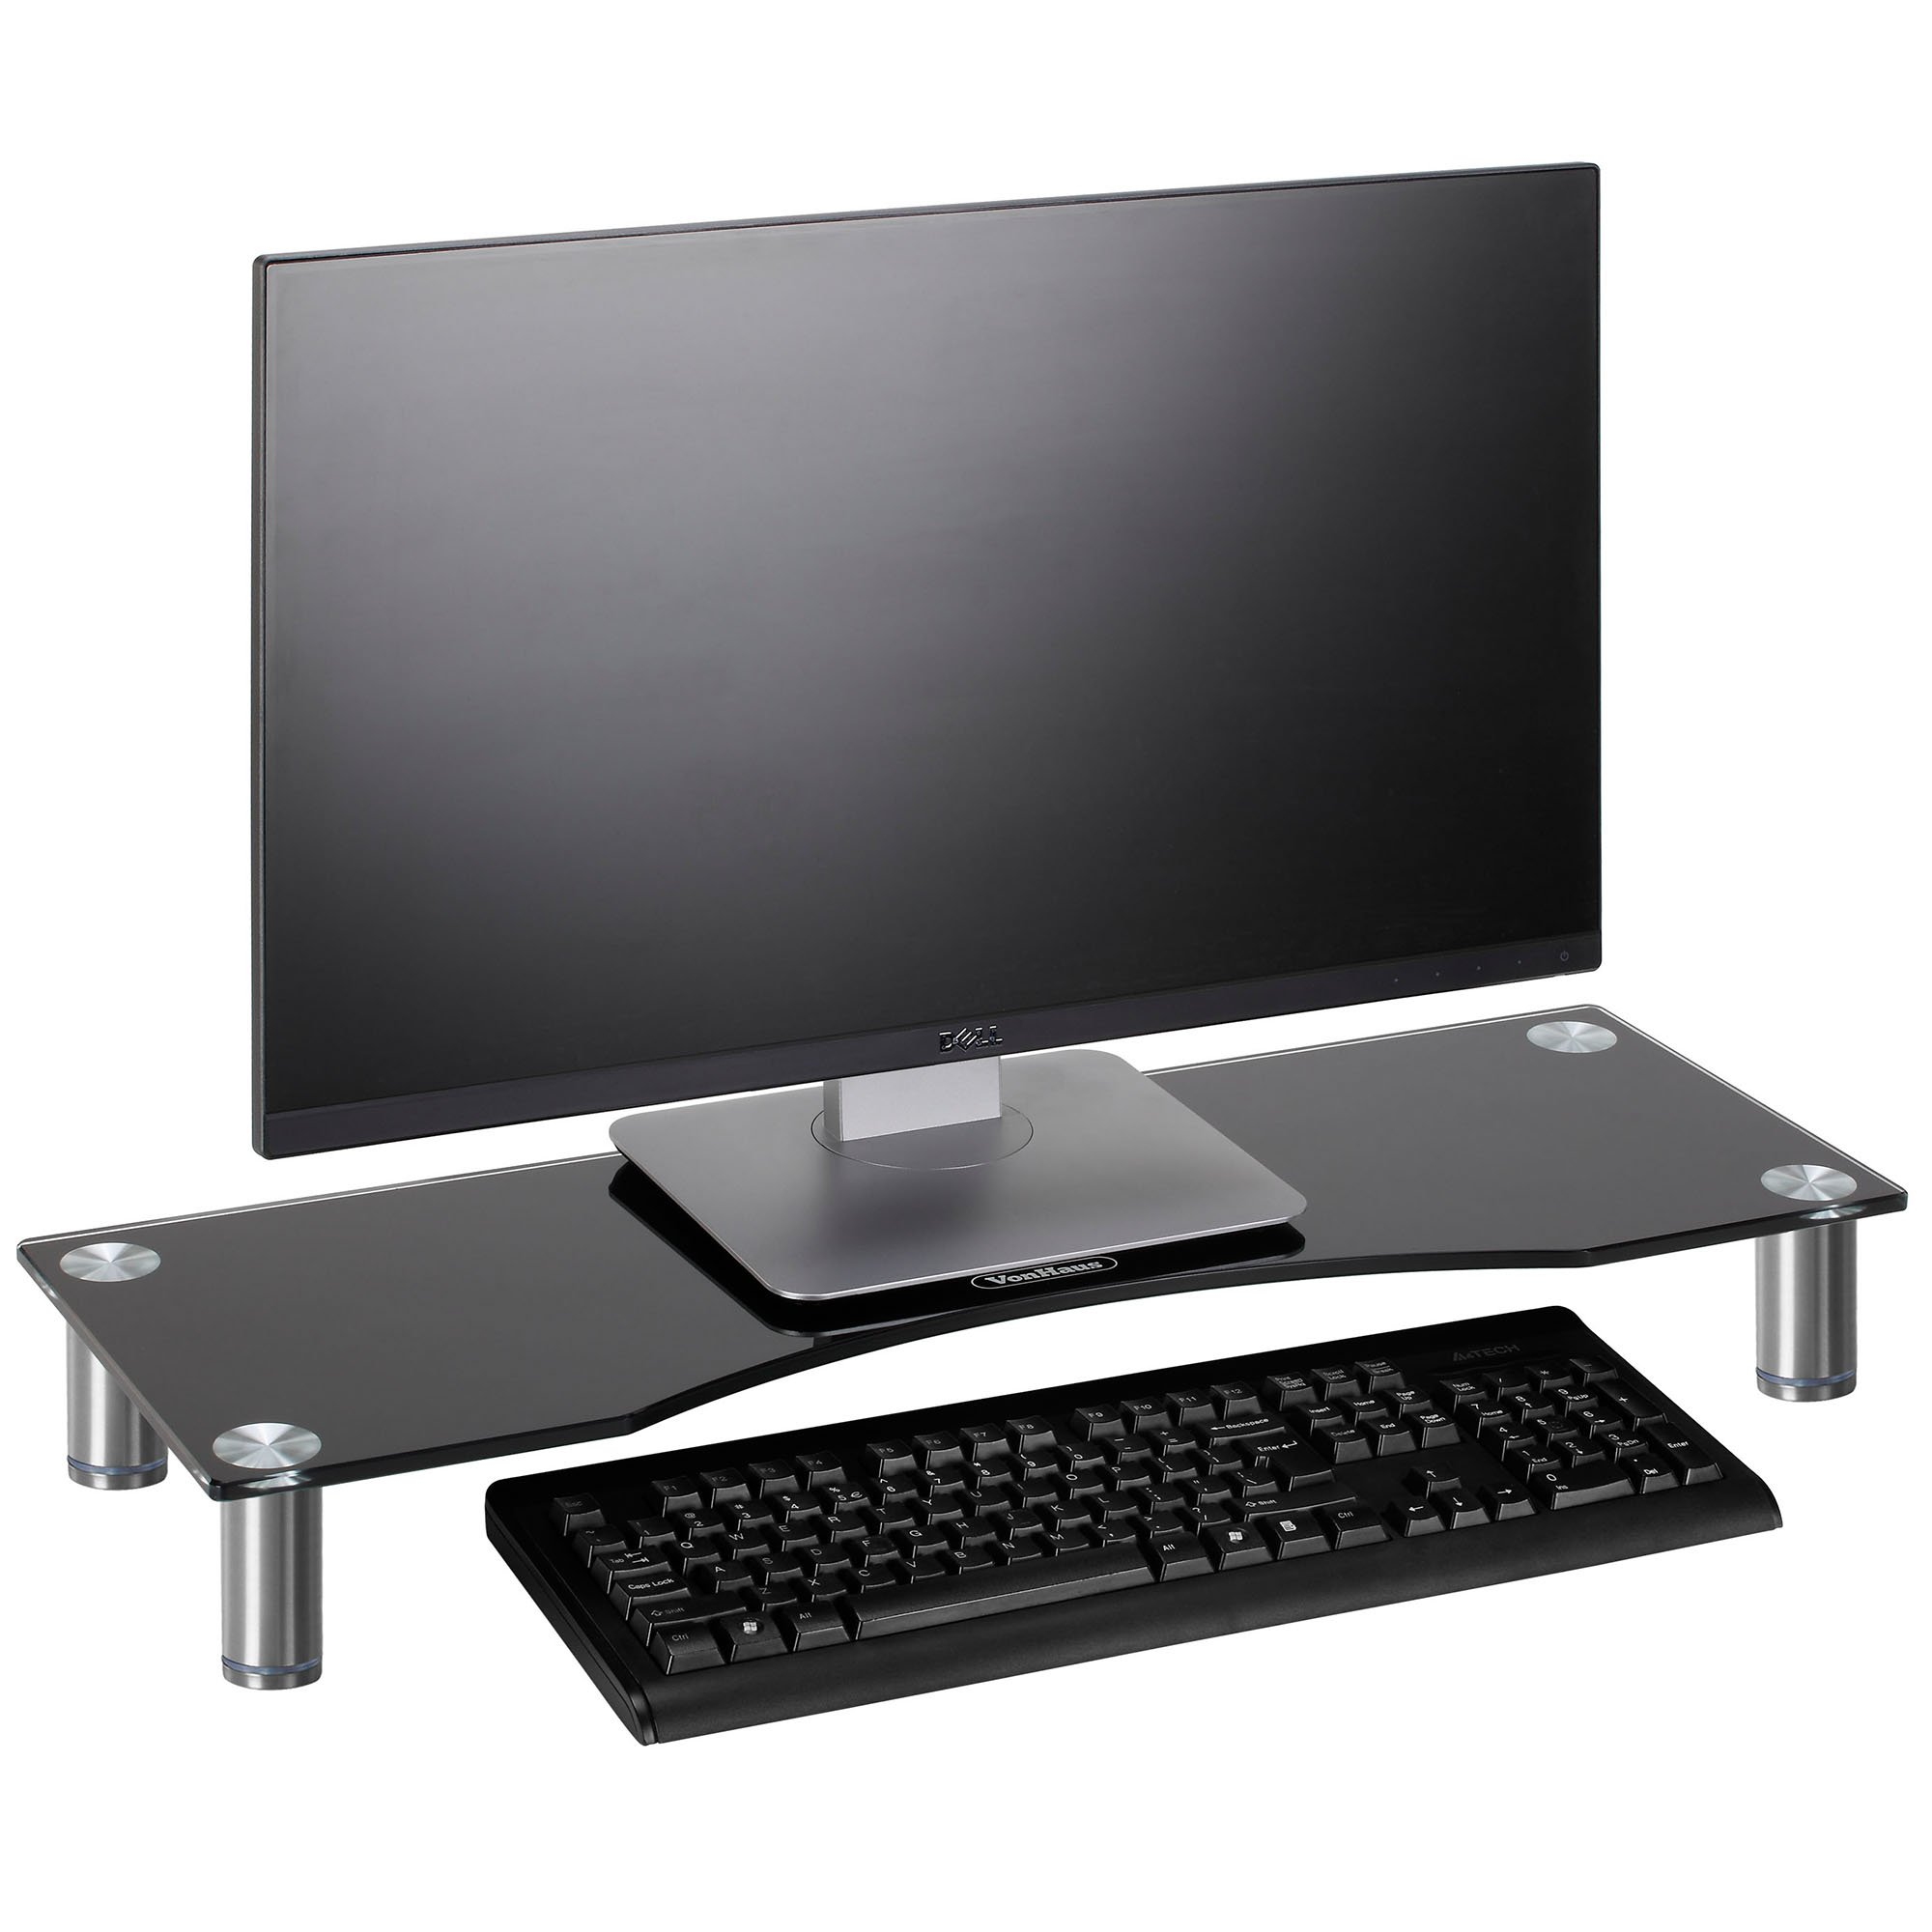 VonHaus 05/081 Large Curved Glass Monitor Stand - Adjustable Height Multiple Screen Riser for PC Monitors, Computers, Laptops & TVs - 27.5 x 9.5 inches - Black